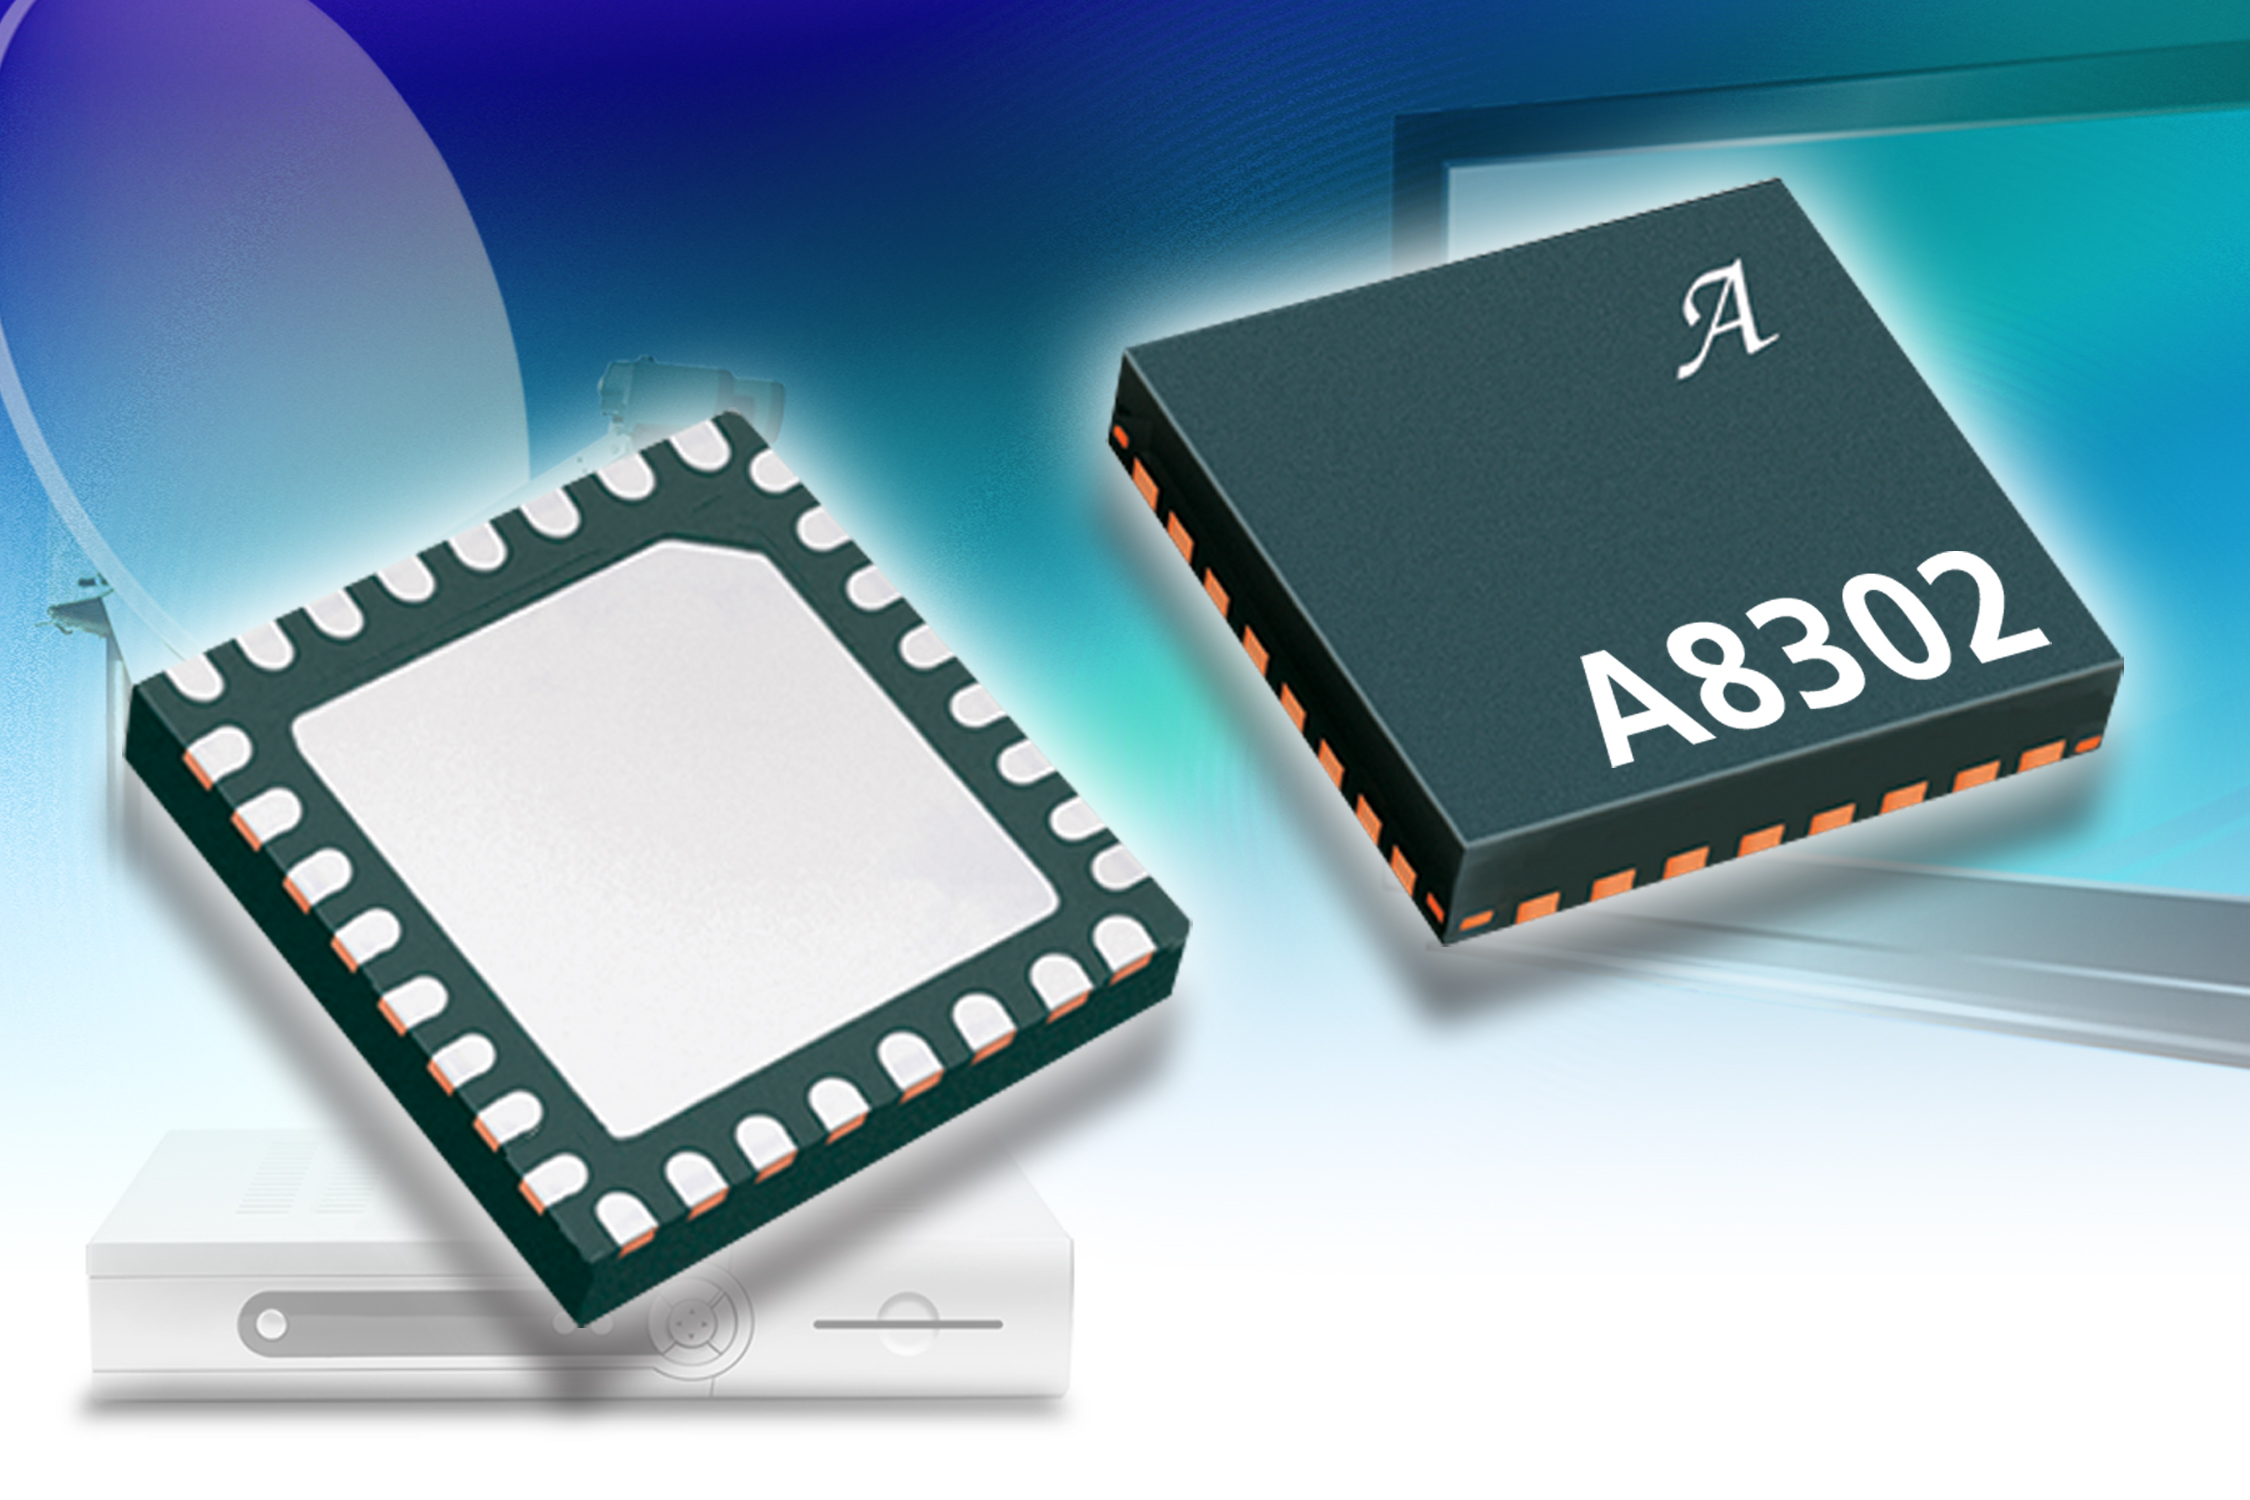 Low Noise Block Regulator Ics Power A Down Converter For Tv Tone Control Circuit Schematic Electronics With Monolithic Switching And Linear Voltage The A8302 Dual Lnb Ic Has Boost Switch Compensation Circuitry Integrated Inside